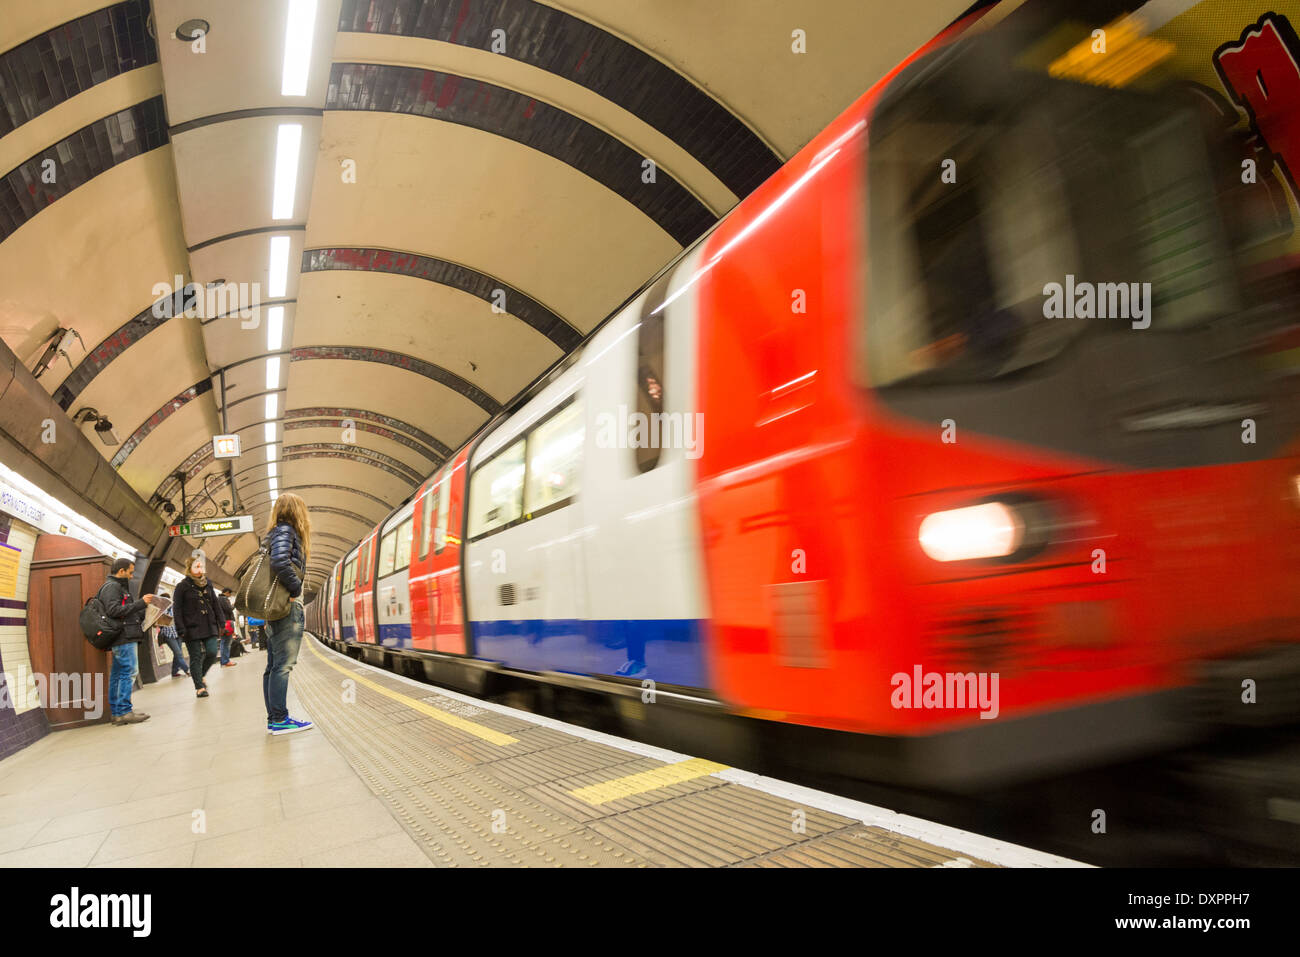 Ligne du nord London Underground train arrivant en gare, UK Photo Stock